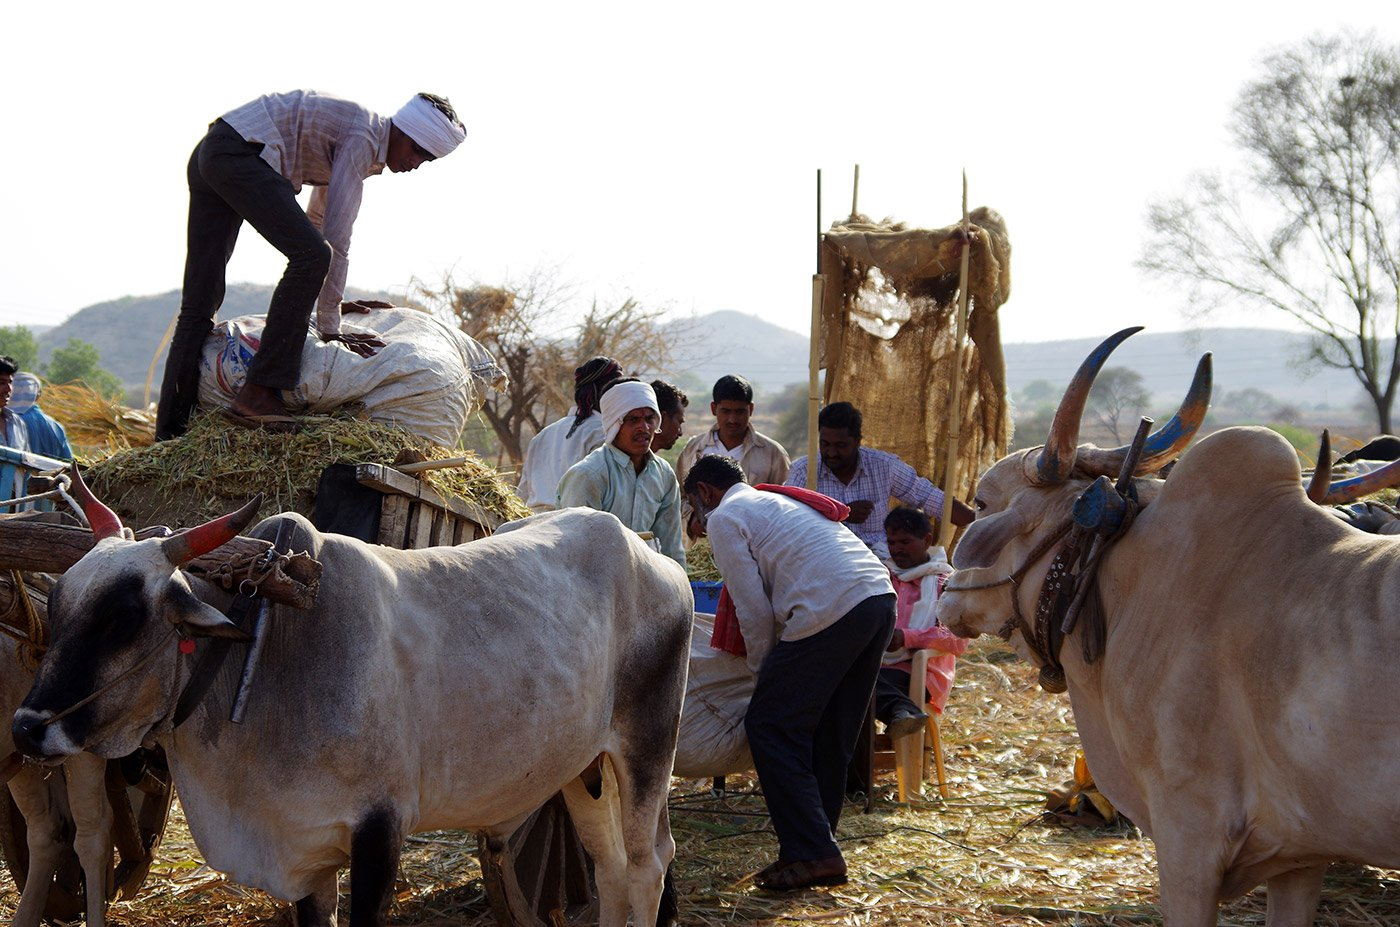 Helpers working to protect cows from heat and drought in one of the biggest cattle camps in Maharashtra.